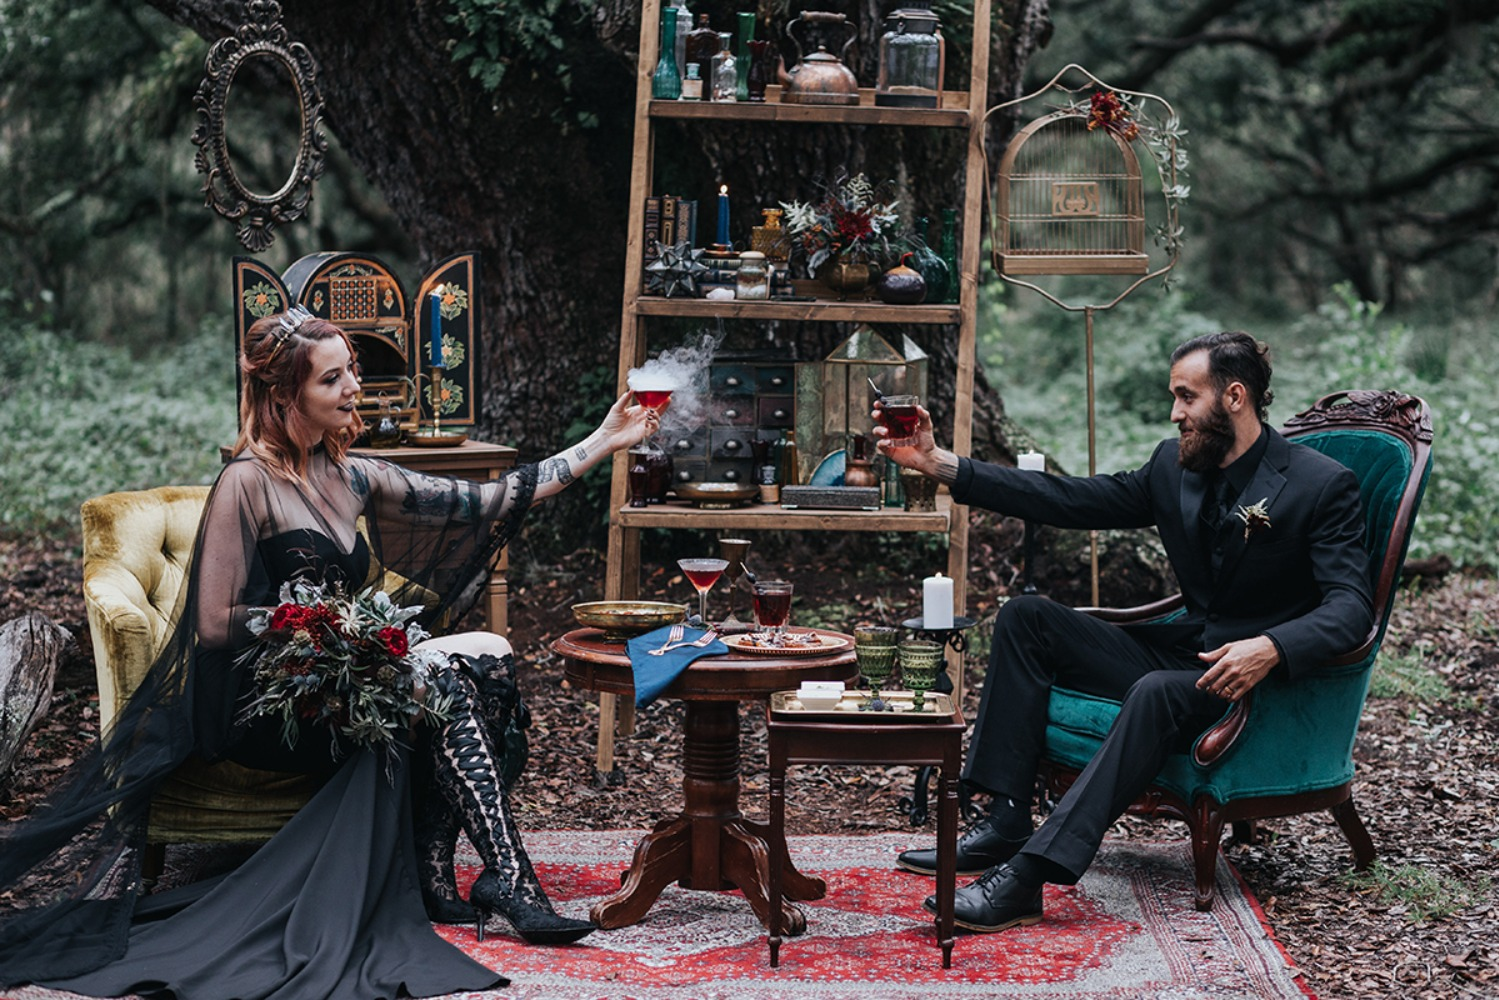 wedding lounge with a dark fantasy vibe